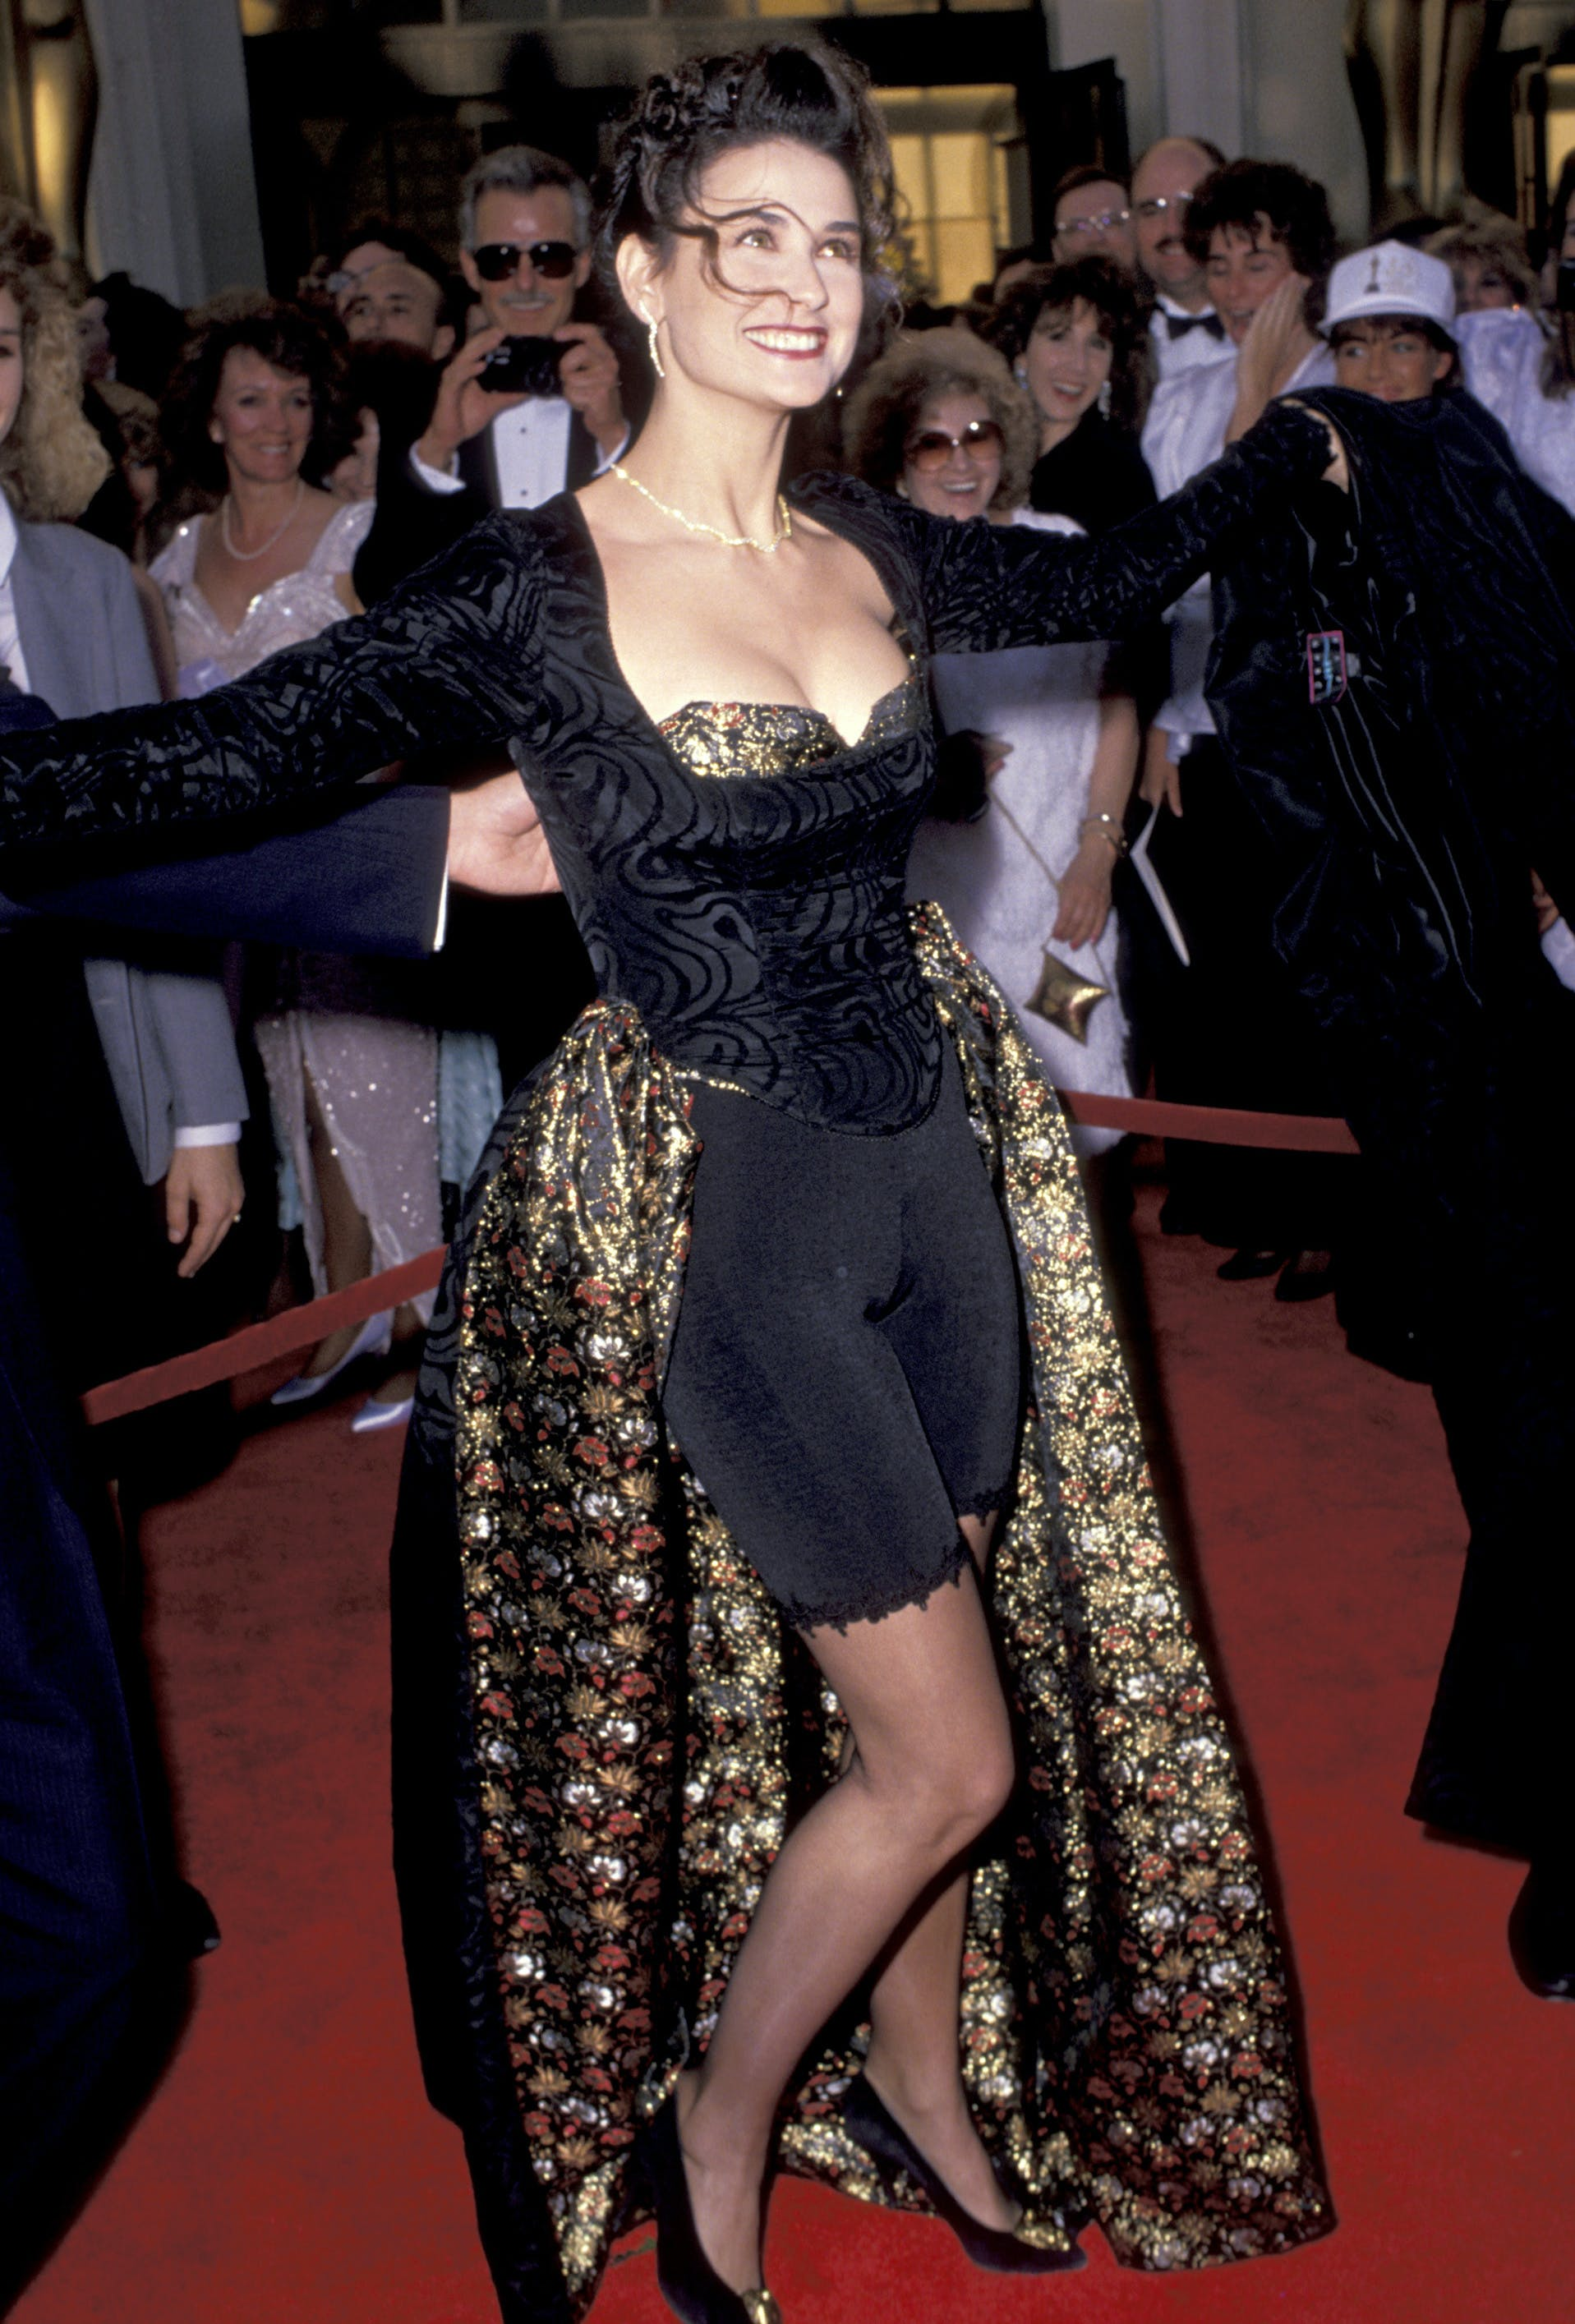 Demi Moore wearing bike shorts at the 1989 Academy Awards